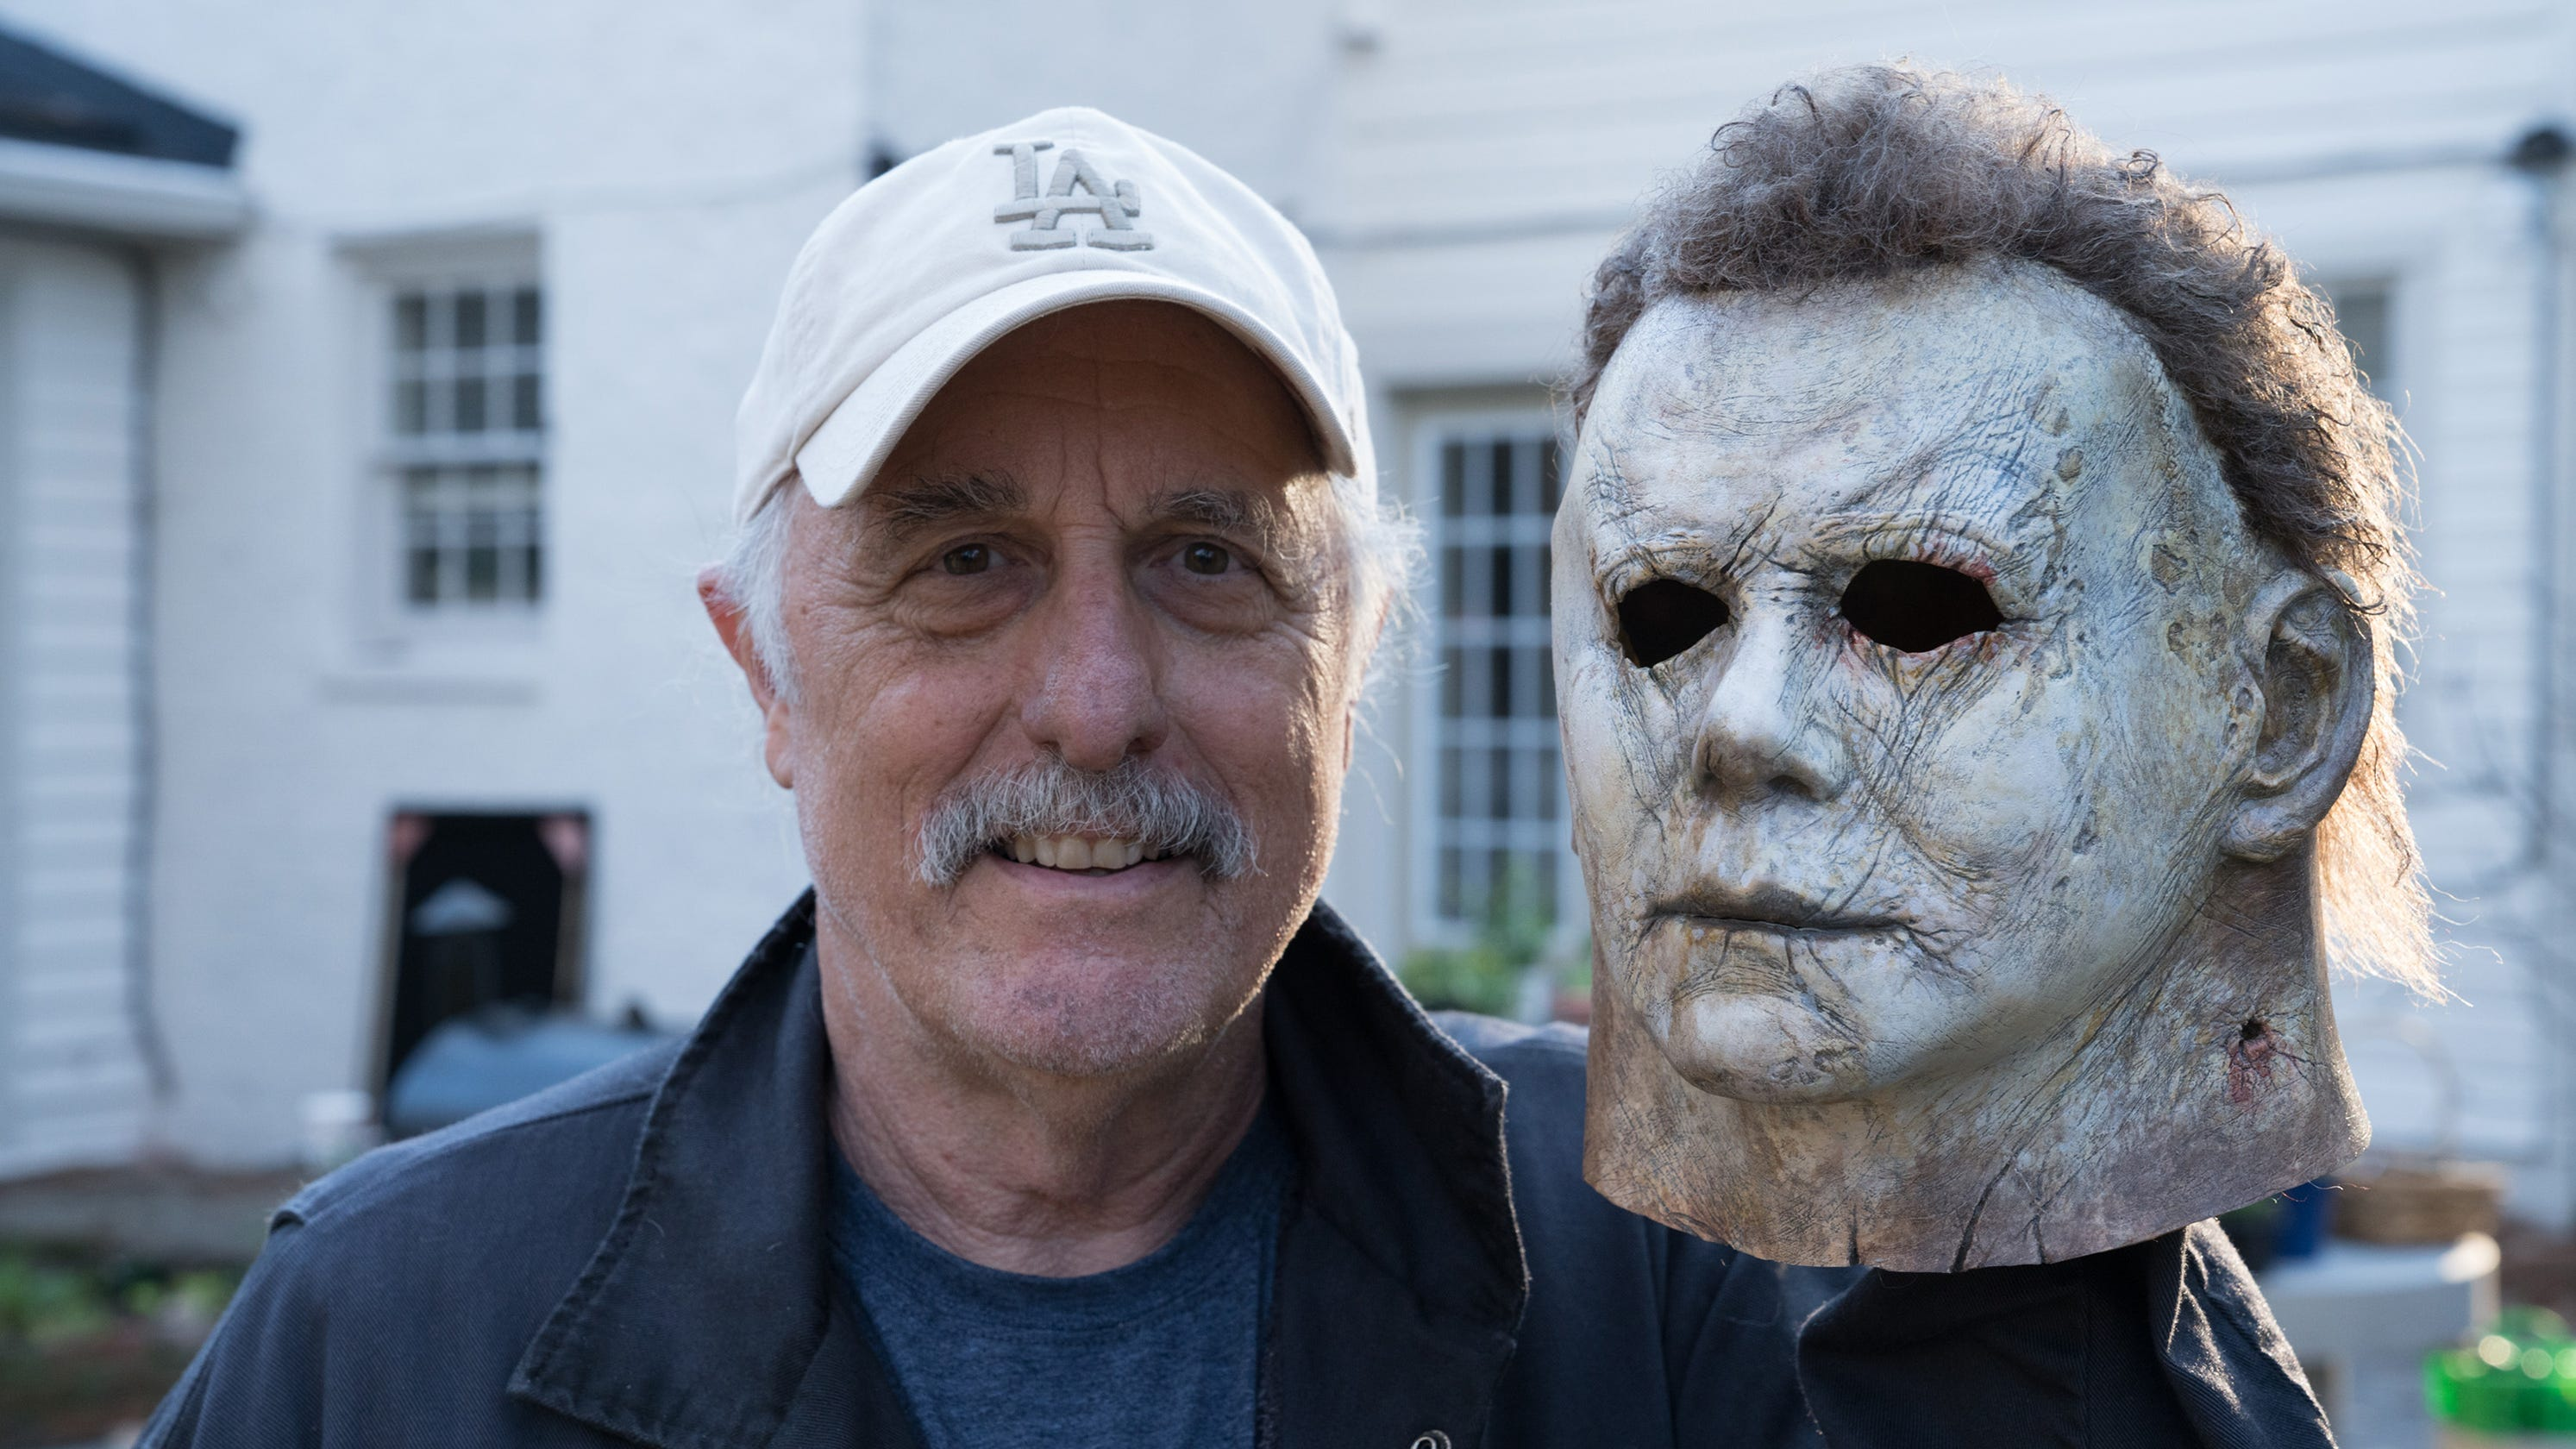 Halloween 2018 Michael Myers Mask.Halloween Nick Castle Puts On The Mask Once More As Michael Myers